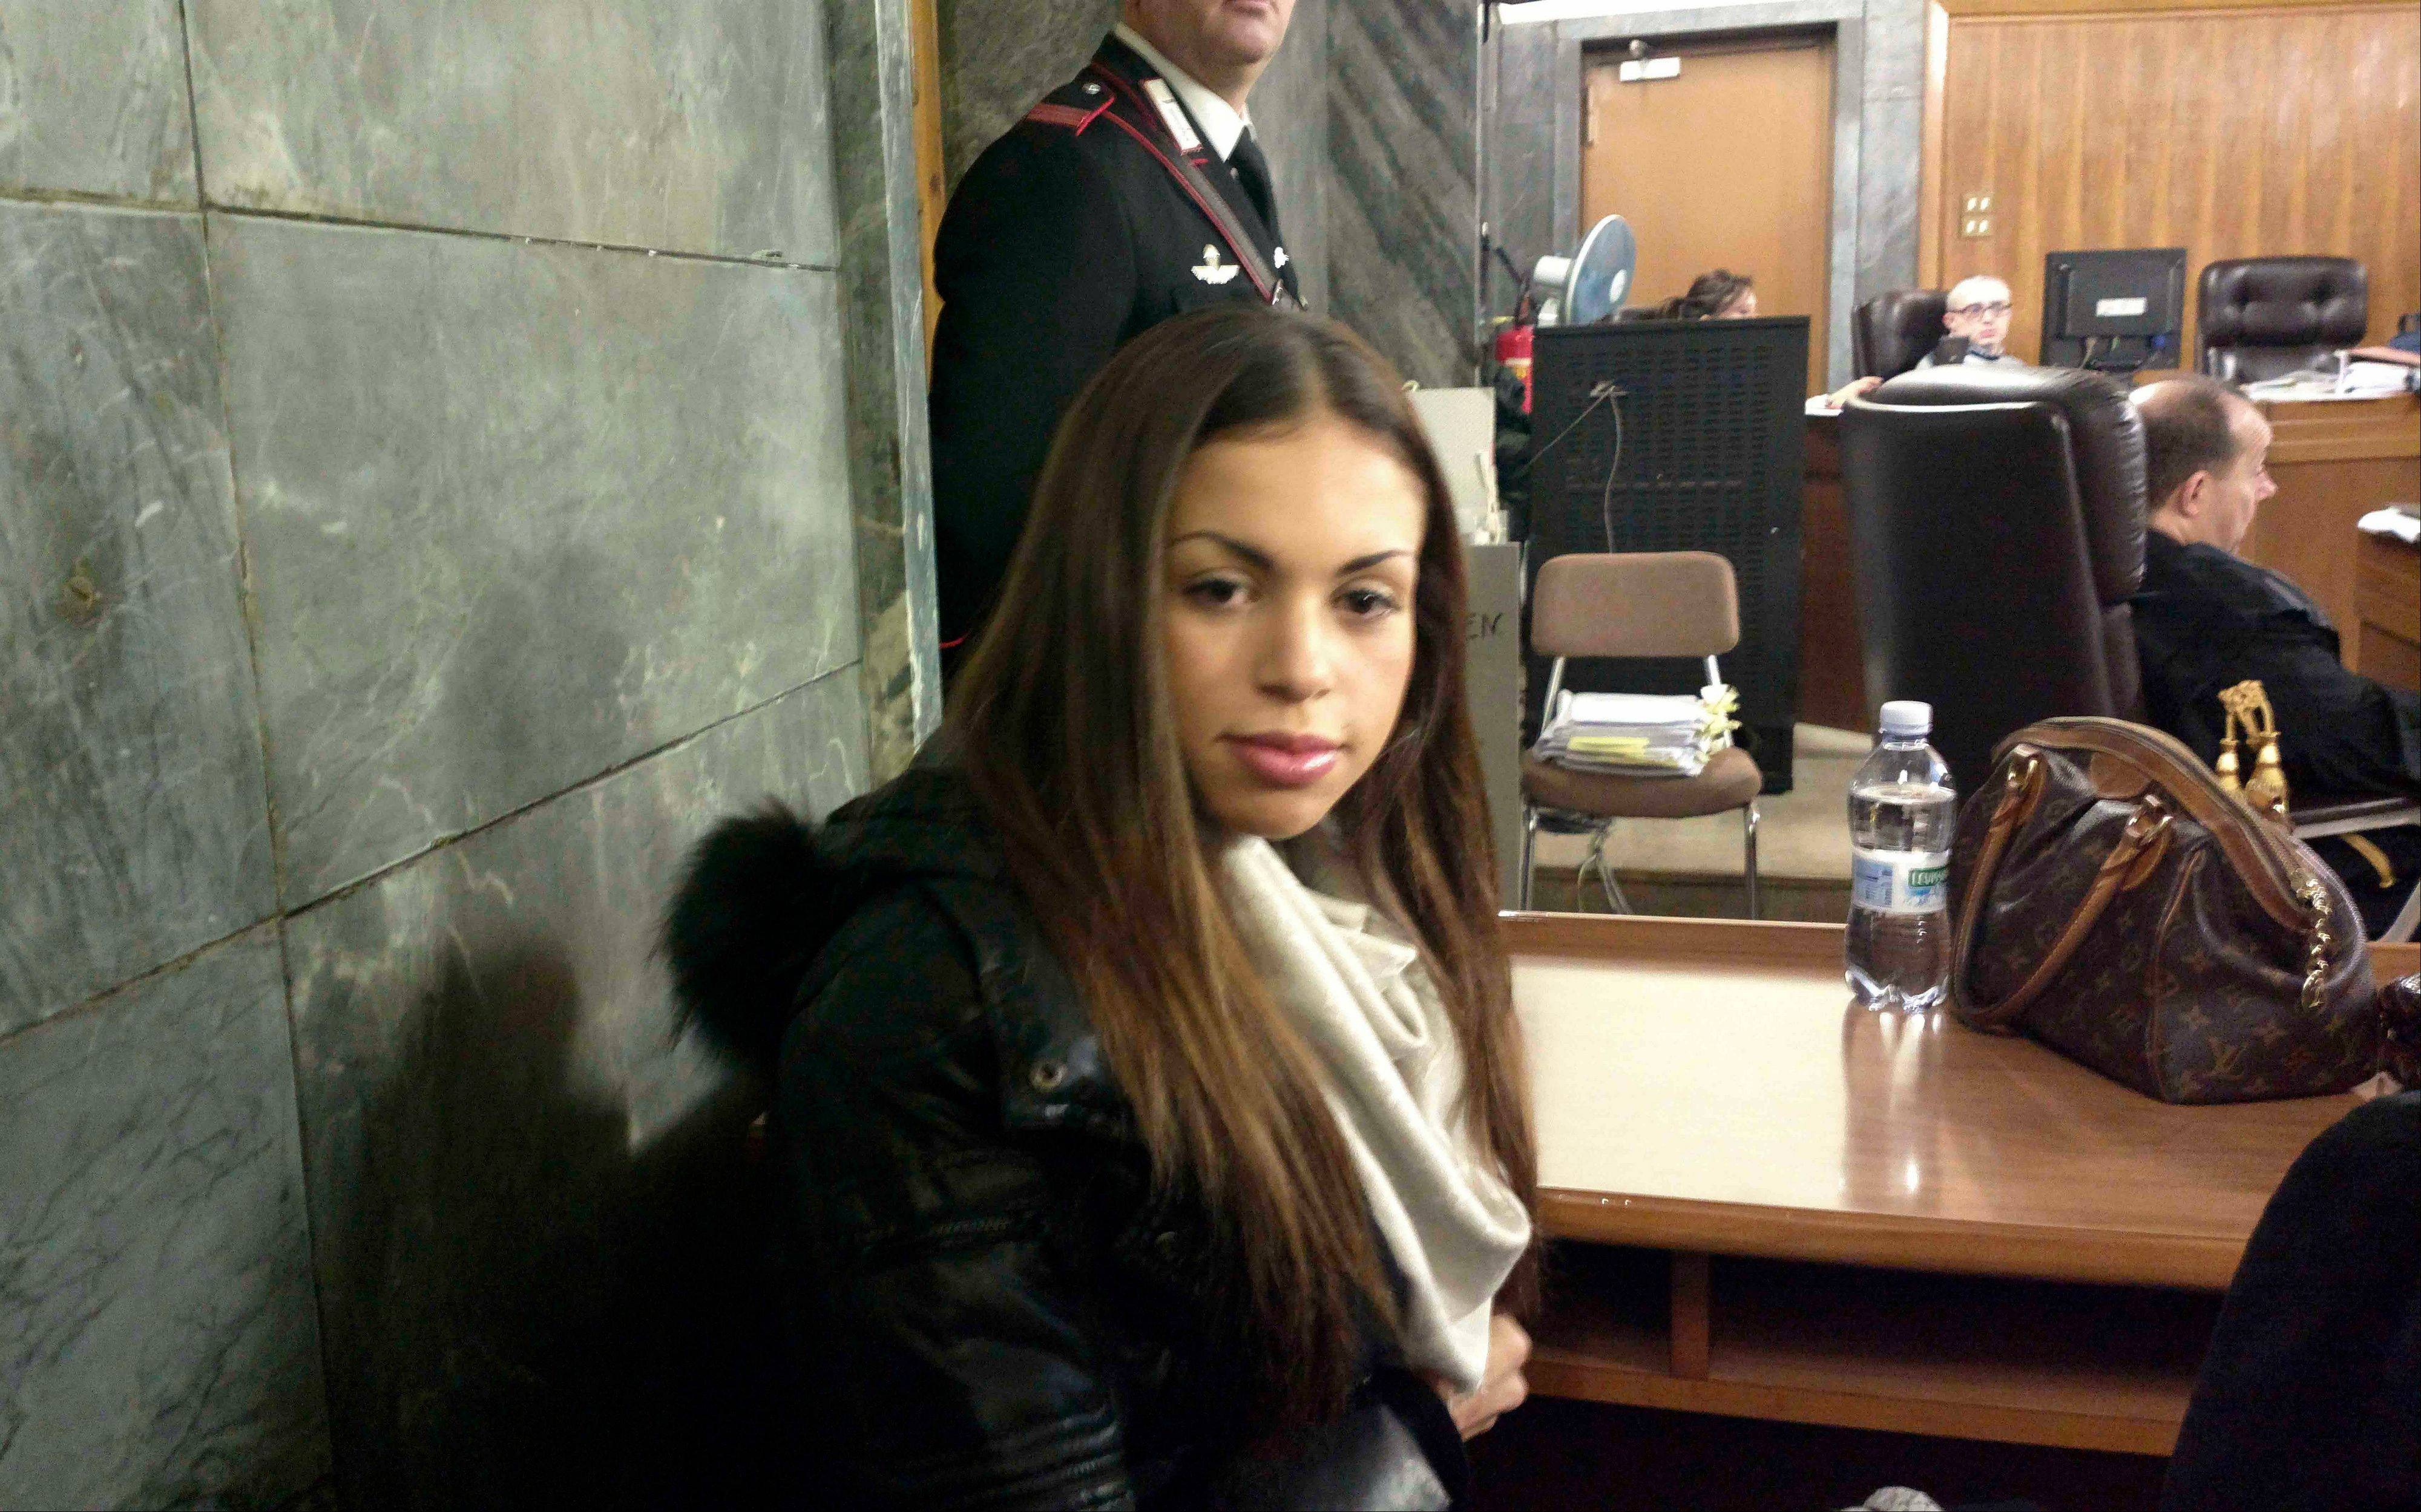 Karima el-Mahroug, the Moroccan woman at the center of ex-Premier Silvio Berlusconi's sex-for-hire trial, sits in a courtroom prior to to testifying as a witness for the first time, in Milan, Monday. Berlusconi is accused of paying for sex with woman, better known as Ruby, when she was 17, and then trying to cover it up. Both deny sexual contact.